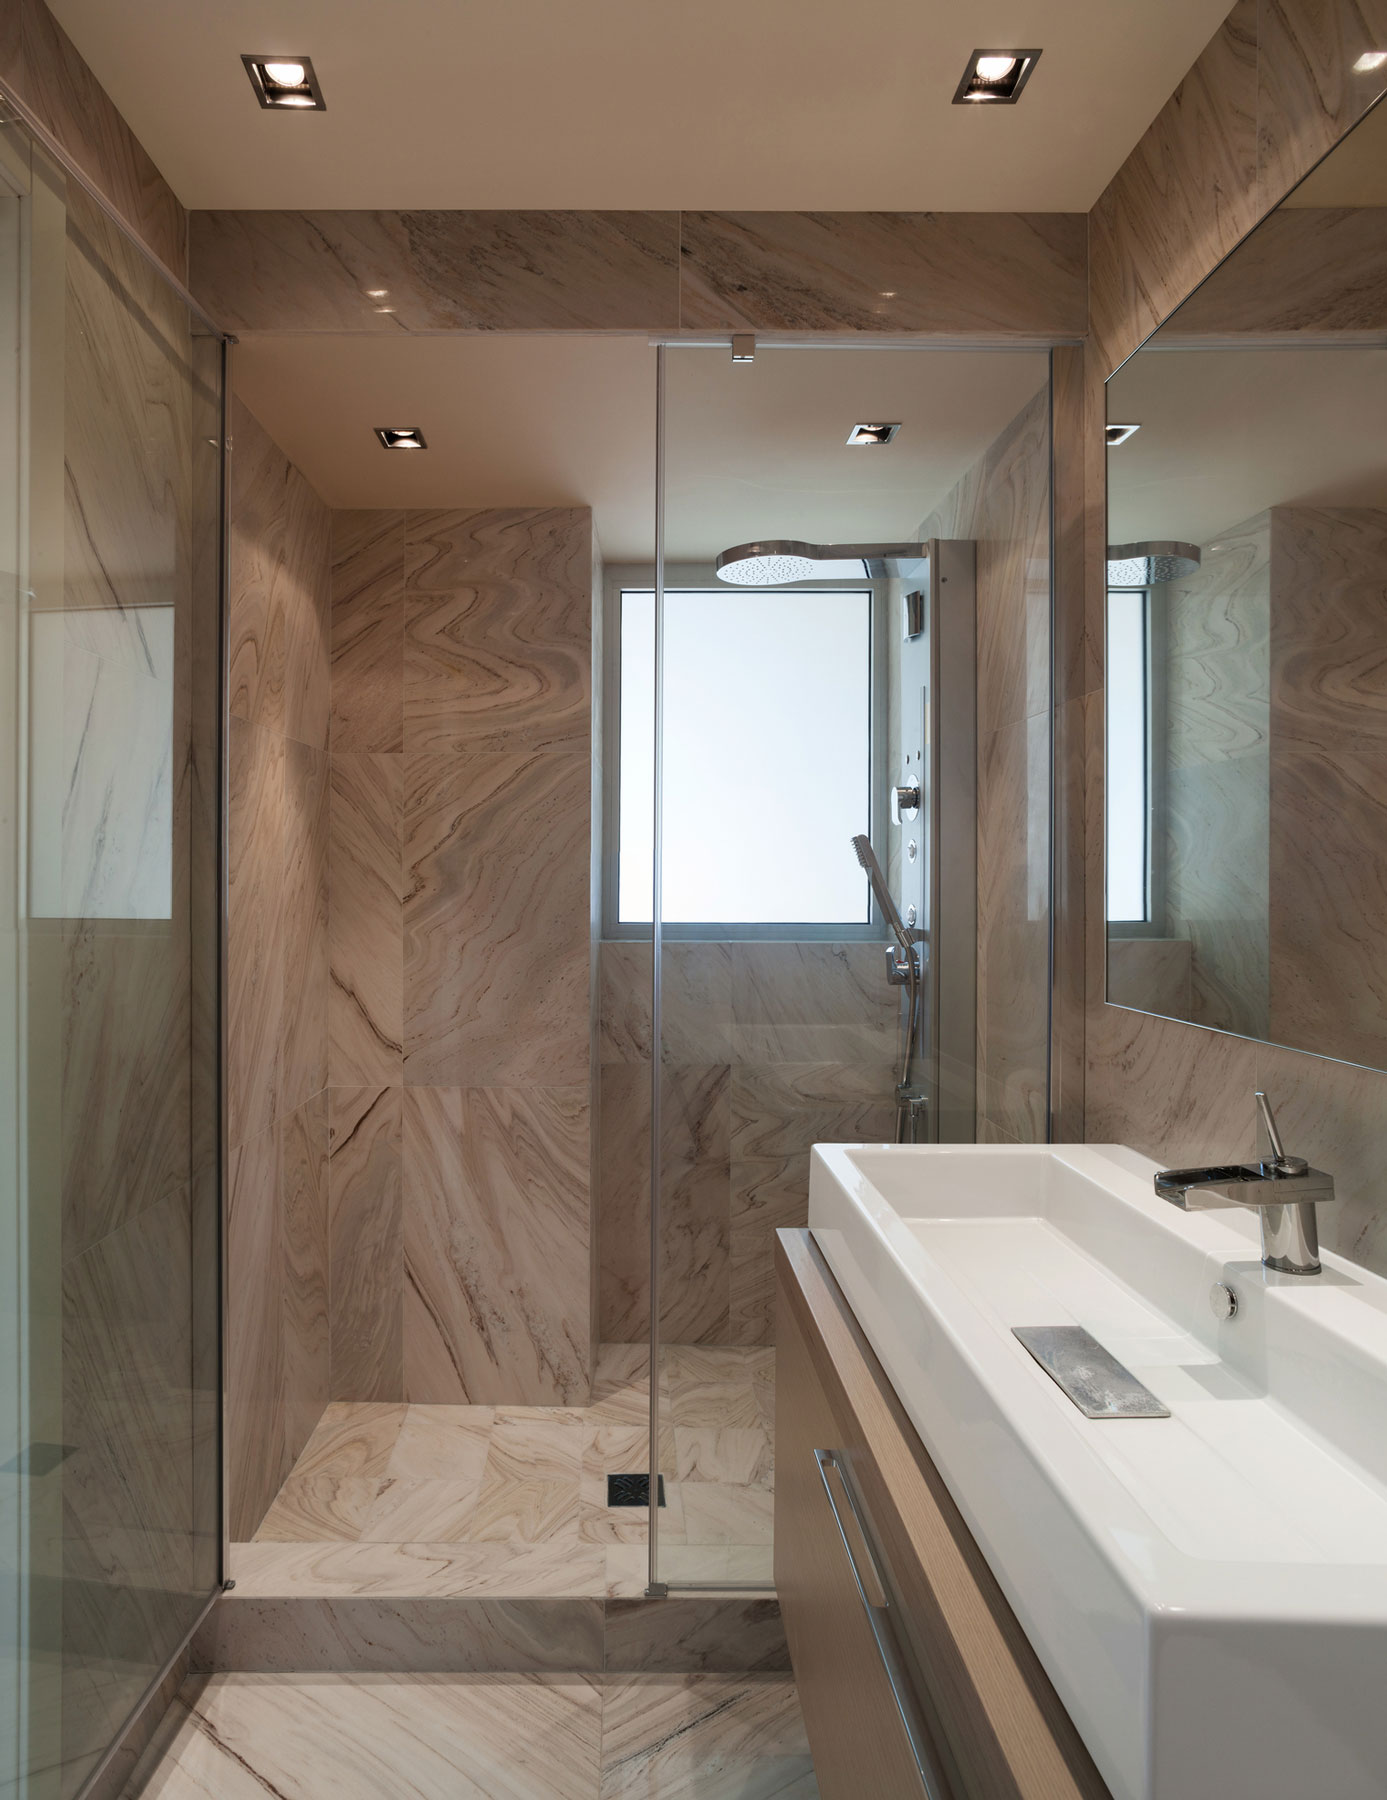 Bathroom with floor-to-ceiling marble tile